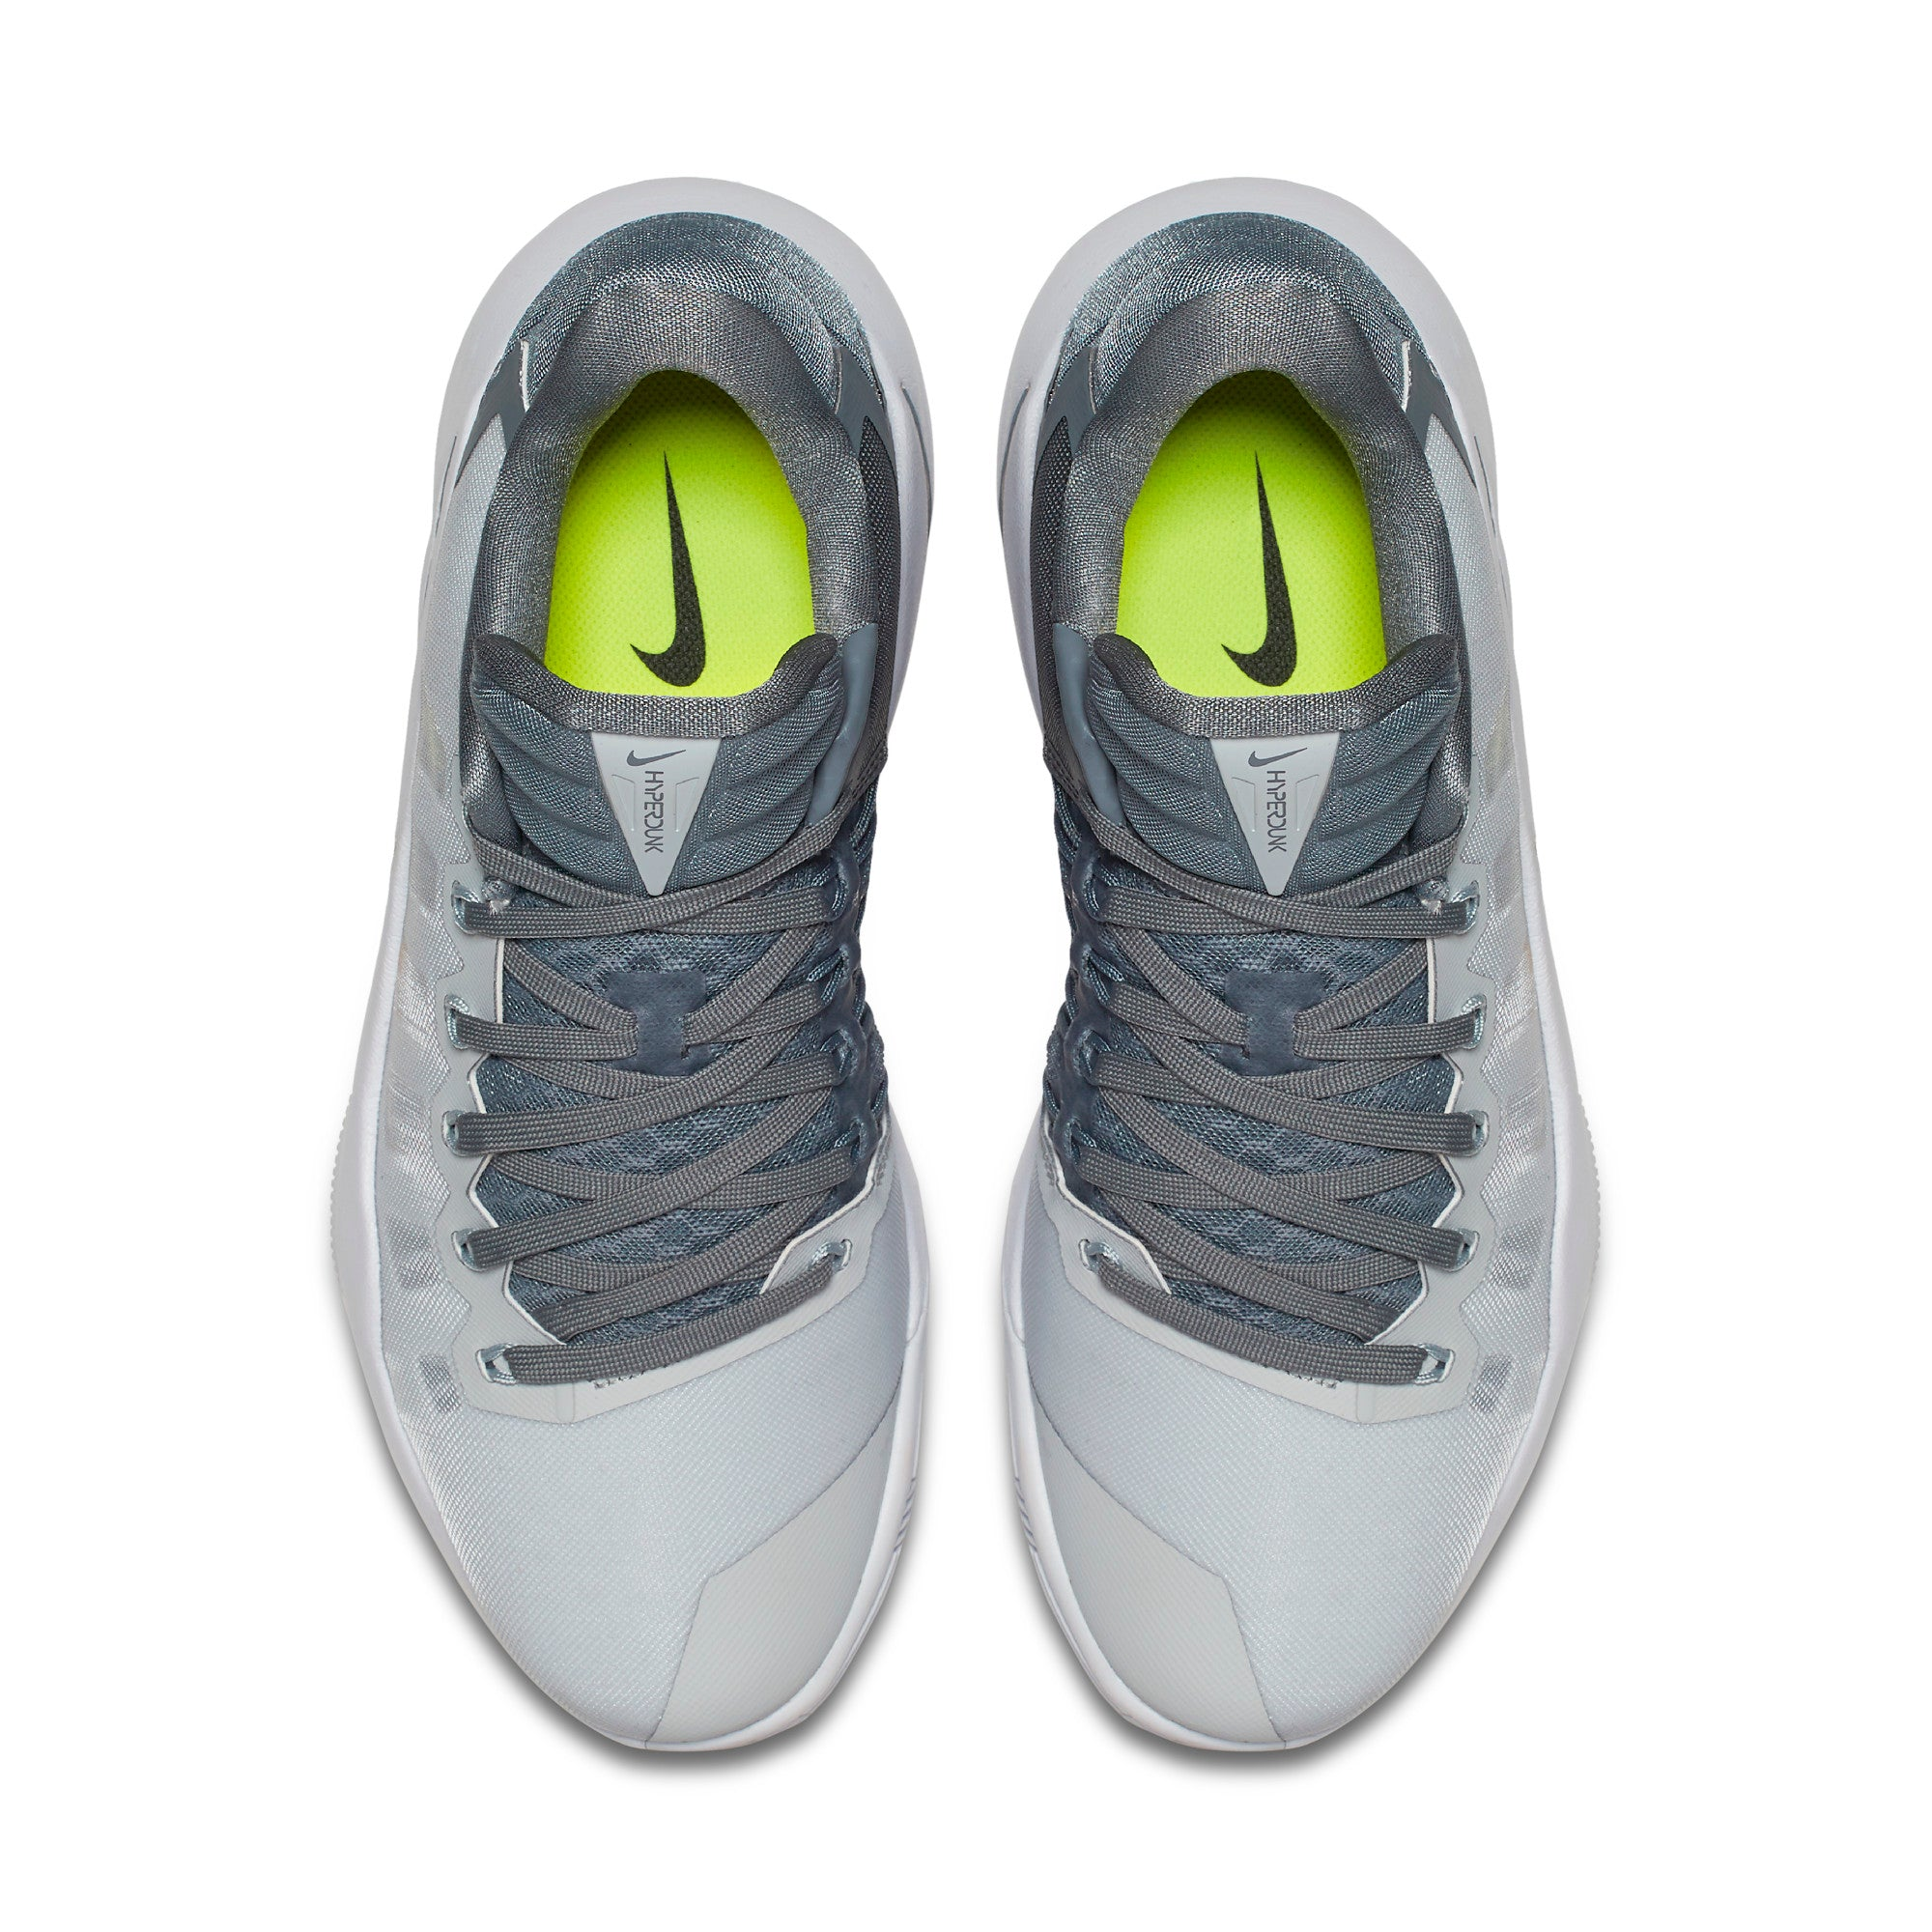 Nike Hyperdunk 2016 Low Basketball Shoe - Pure Platinum/Cool Grey/White